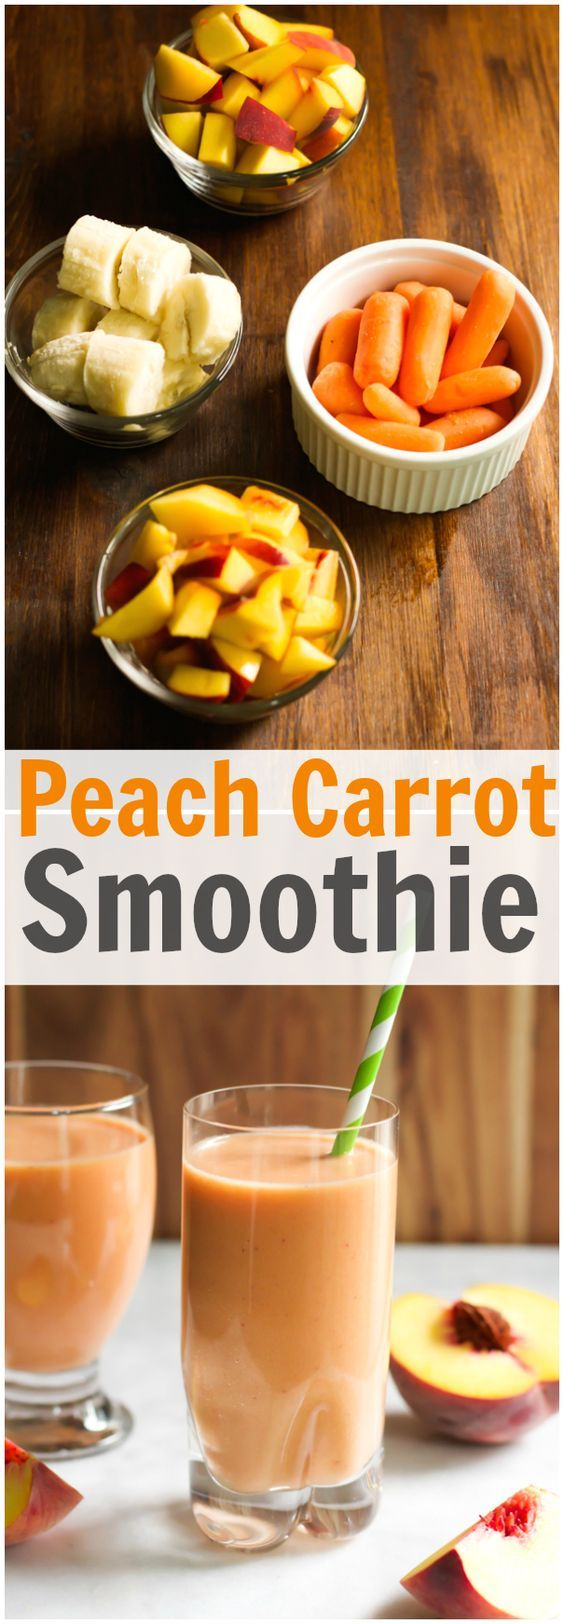 Peach Carrot Smoothie                                                                                                                                                                                 Plus